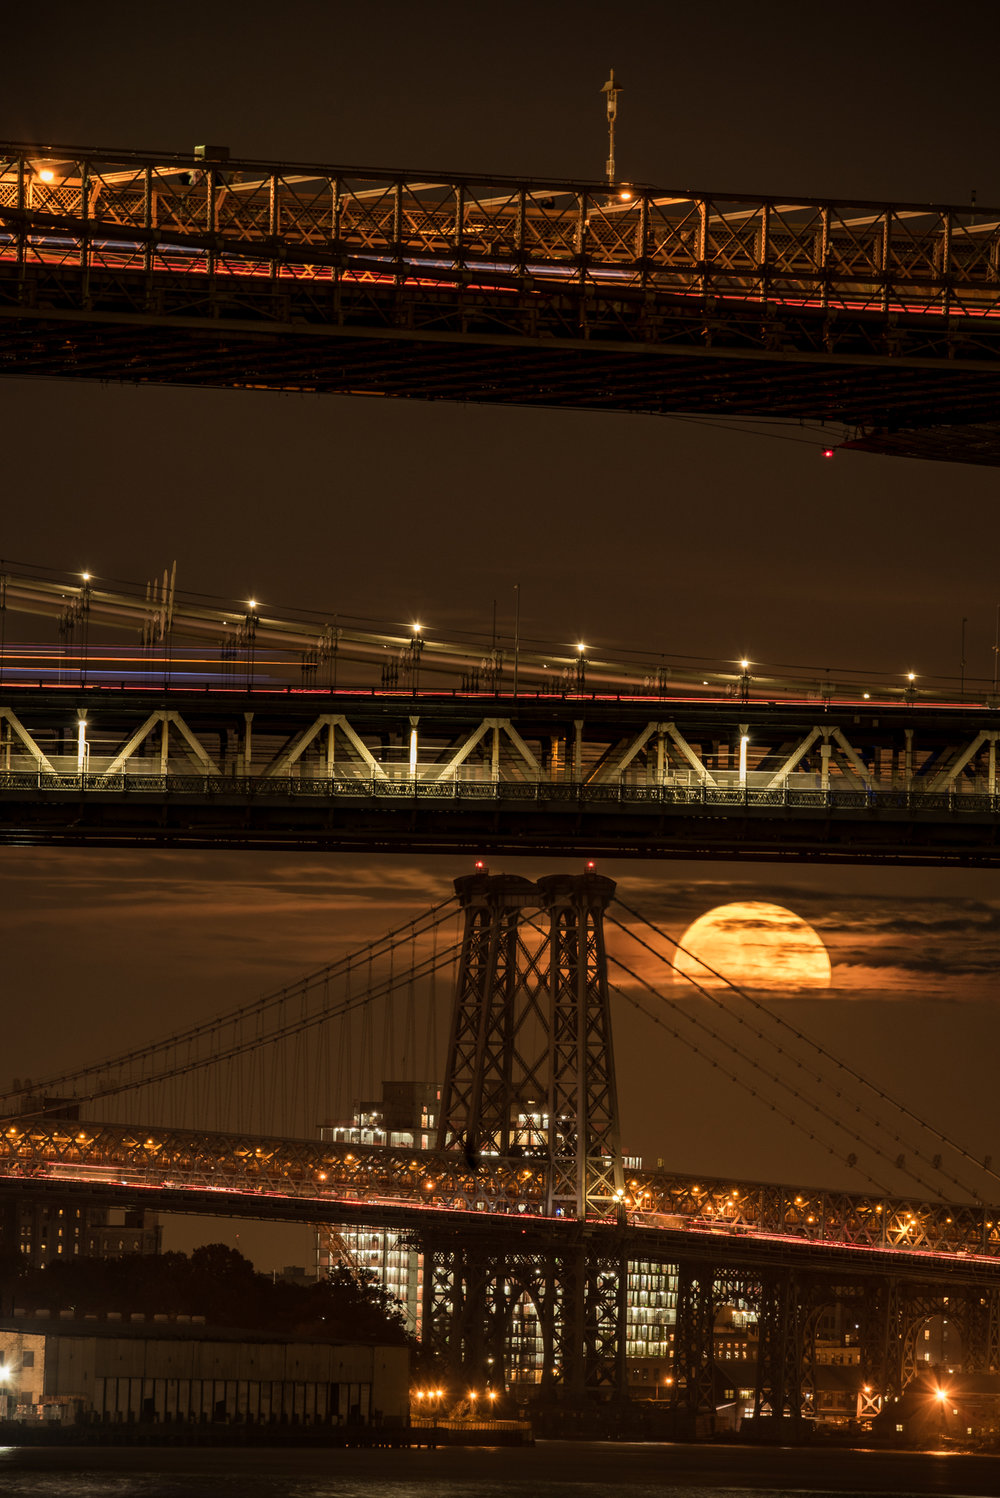 "Normal     0                     false     false     false         EN-US     X-NONE     X-NONE                                                                                                                                  Supermoon through 3 Bridges.  Nikon D750  and  Tamron 150-600mm f/5-6.3  lens. 1/2 second, f/11, ISO 400. © Gabriel Biderman.                                                                                                                                                                                                                                                                                                                                                                                                                                                                                                                                                                                    /* Style Definitions */  table.MsoNormalTable 	{mso-style-name:""Table Normal""; 	mso-tstyle-rowband-size:0; 	mso-tstyle-colband-size:0; 	mso-style-noshow:yes; 	mso-style-priority:99; 	mso-style-parent:""""; 	mso-padding-alt:0in 5.4pt 0in 5.4pt; 	mso-para-margin:0in; 	mso-para-margin-bottom:.0001pt; 	mso-pagination:widow-orphan; 	font-size:10.0pt; 	font-family:""Times New Roman"",""serif""; 	border:none;}"